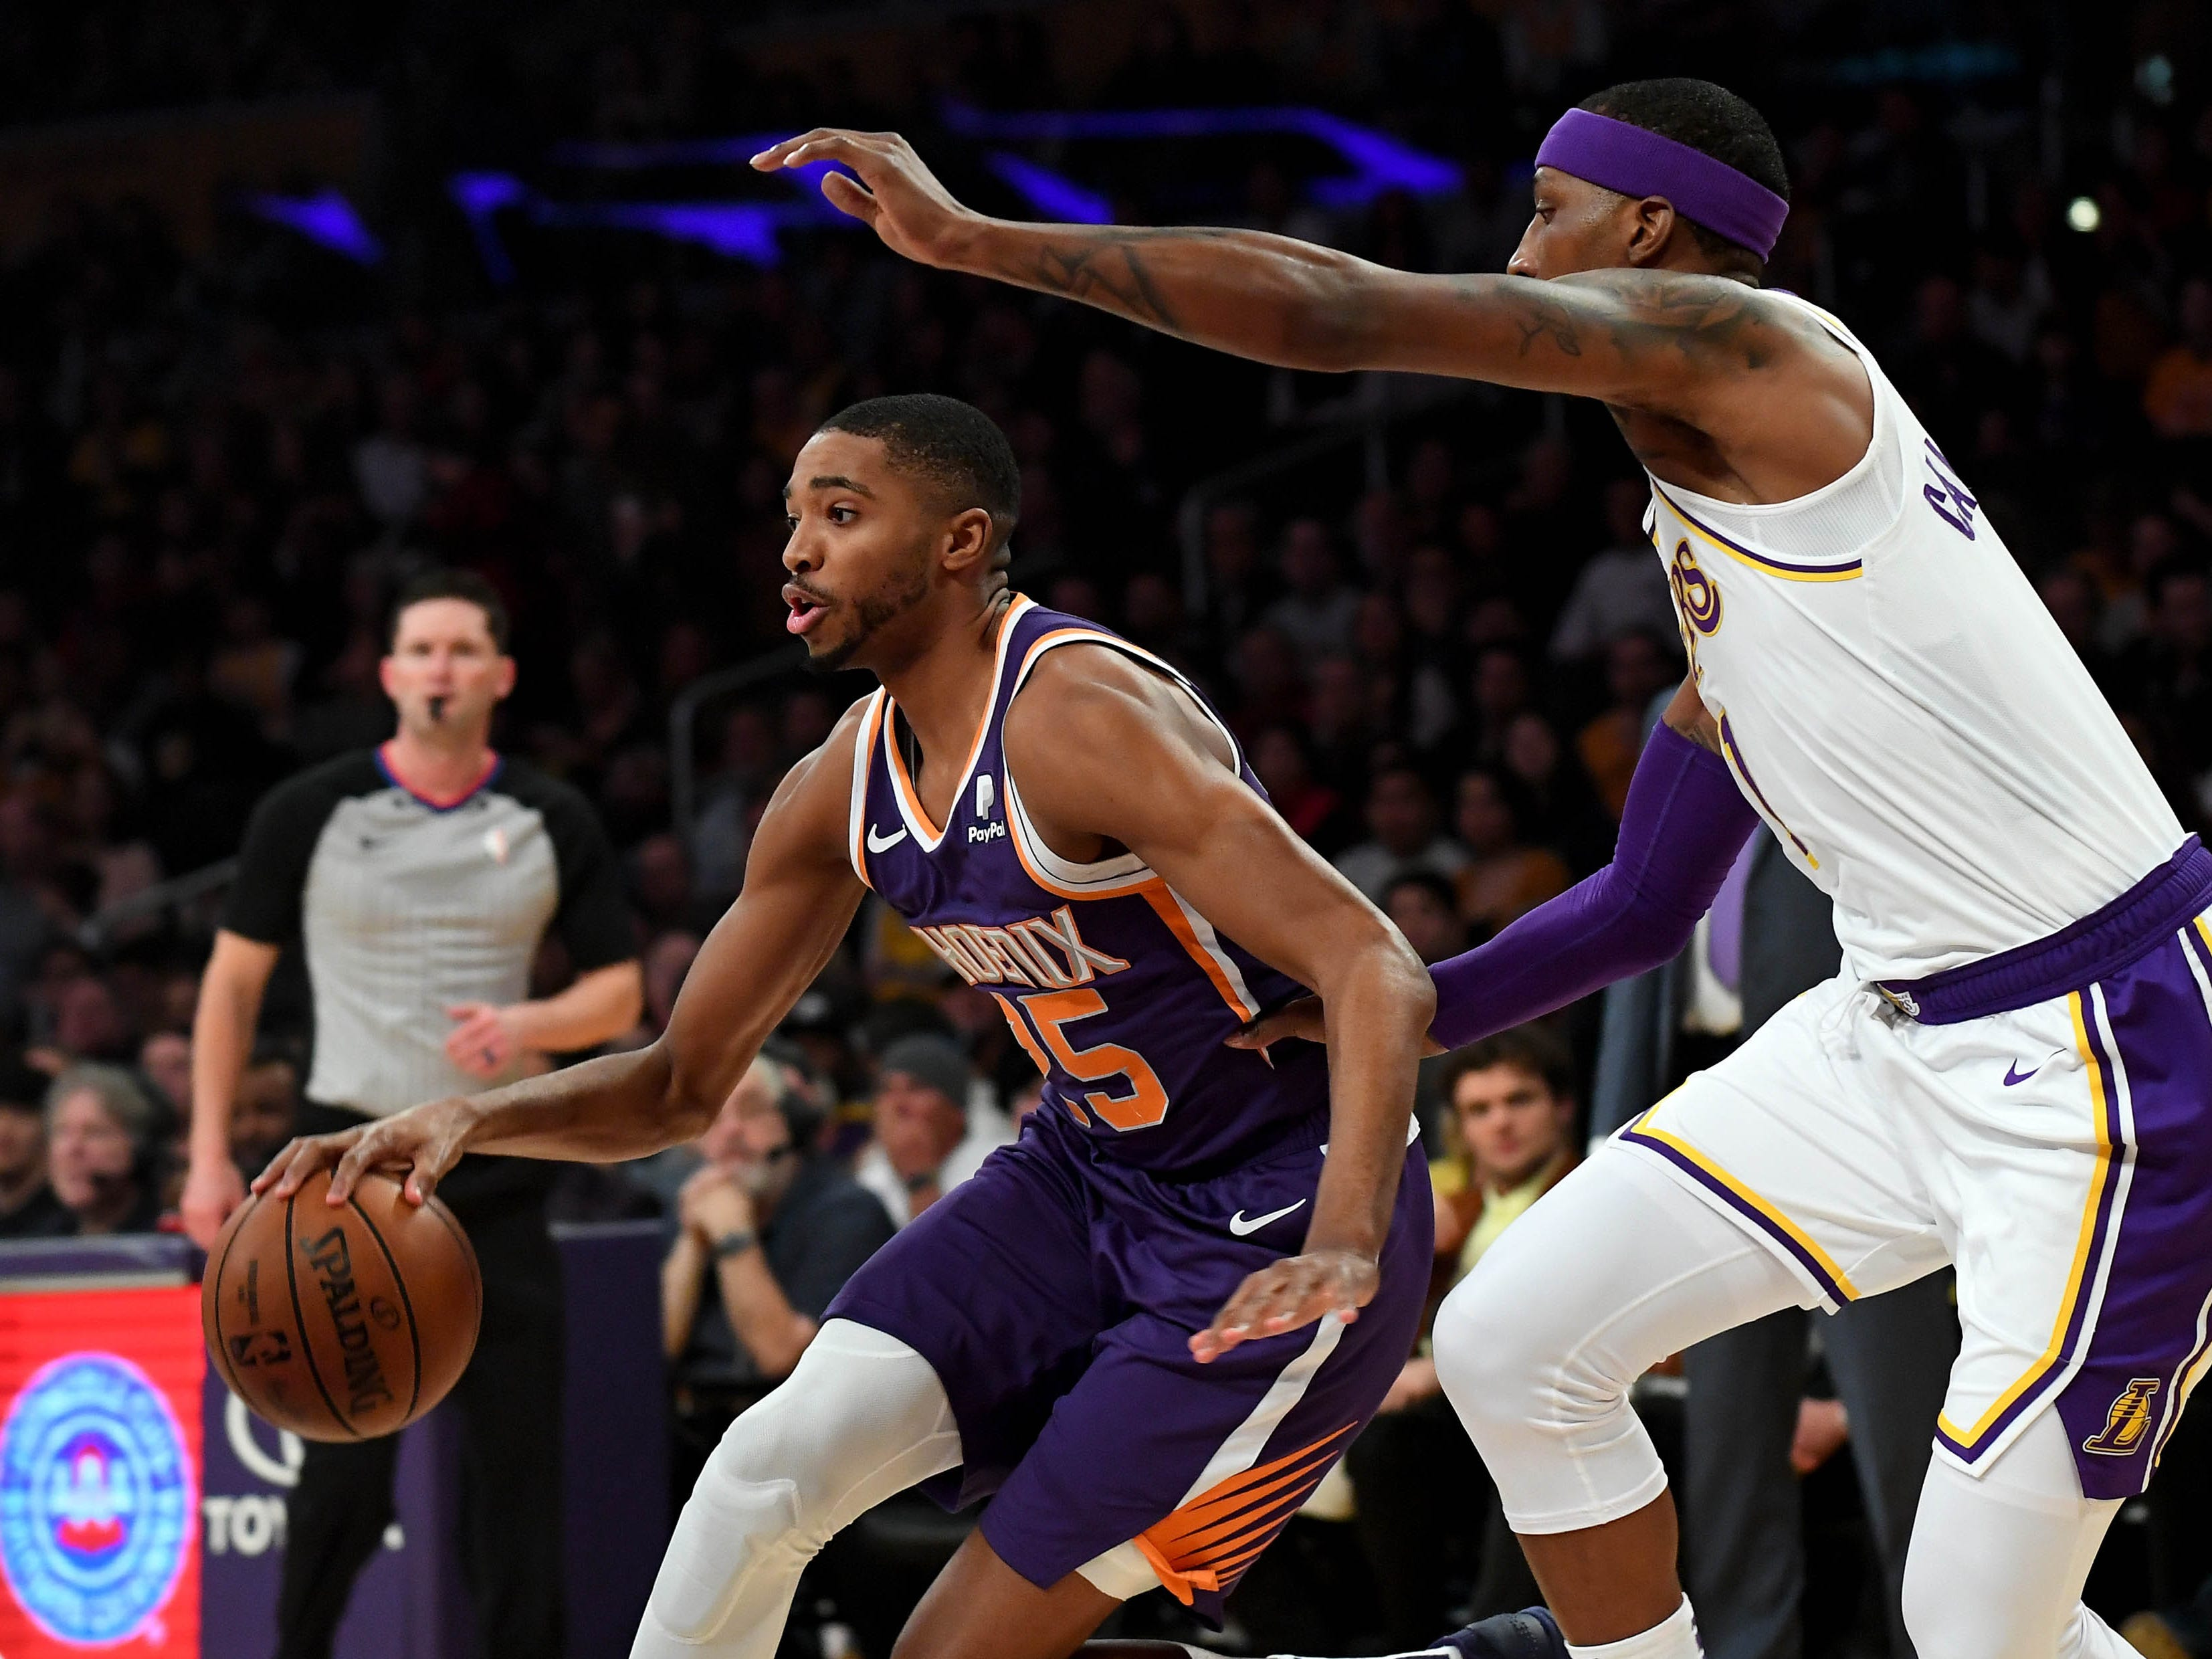 Jan 27, 2019; Los Angeles, CA, USA; Los Angeles Lakers guard Kentavious Caldwell-Pope (1) guards Phoenix Suns forward Mikal Bridges (25) as drives to the basket in the first half of the game at Staples Center. Mandatory Credit: Jayne Kamin-Oncea-USA TODAY Sports